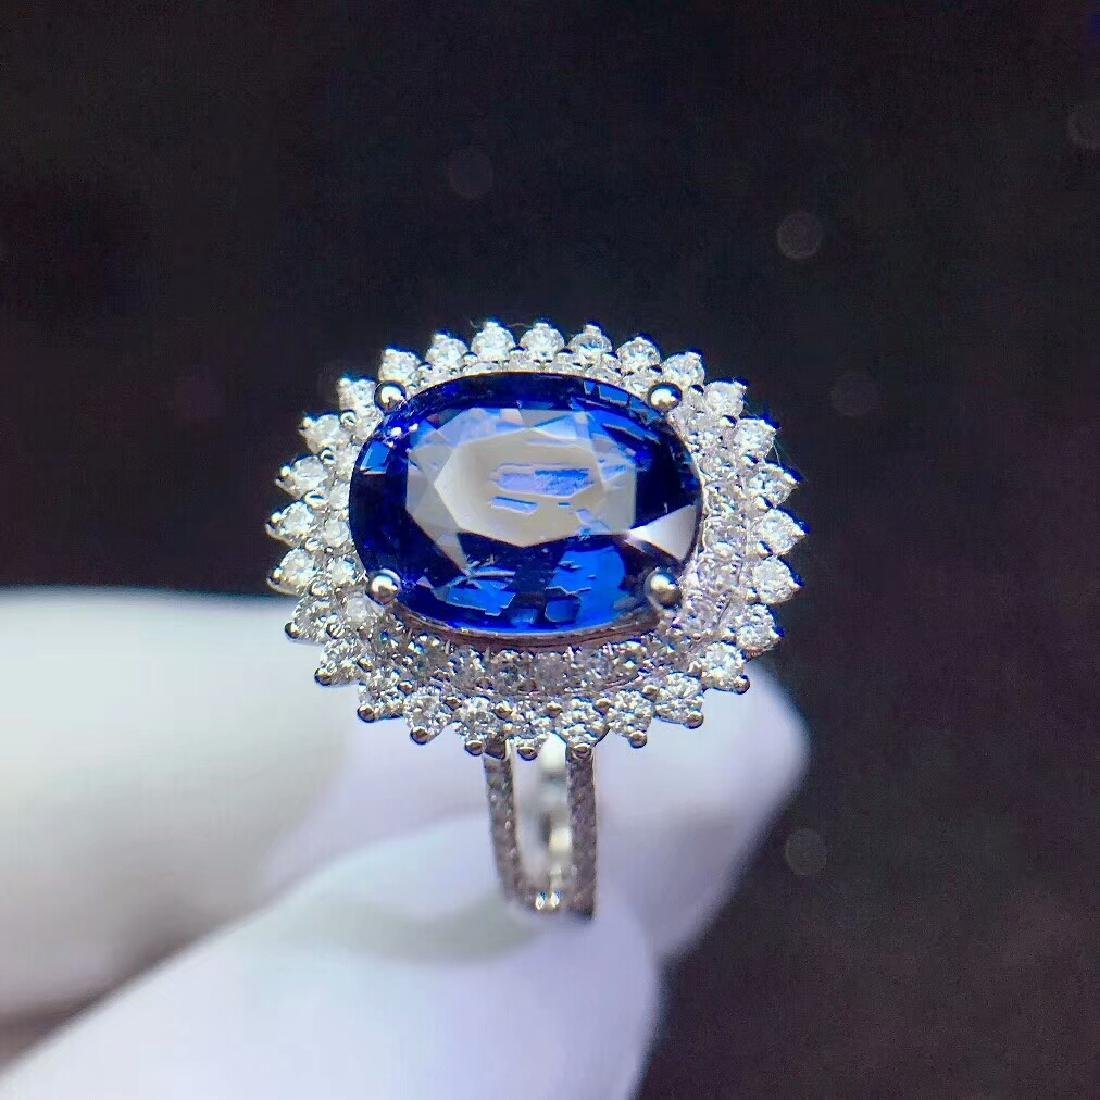 3.04ct Sapphire Ring in 18kt white Gold - 4